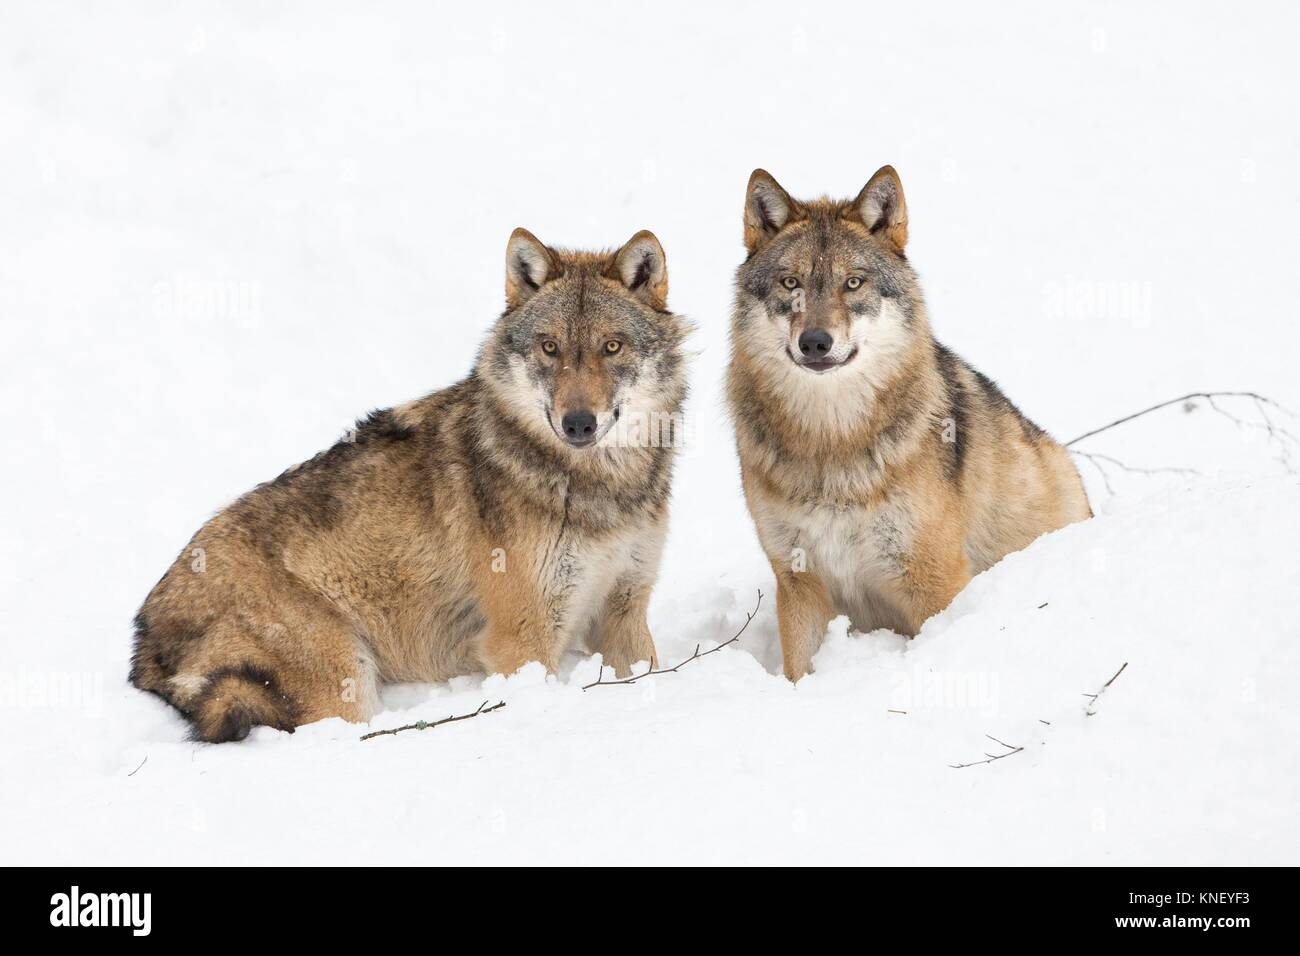 Two wolves (Canis lupus) in winter, Bavarian Forest National Park, Germany. - Stock Image